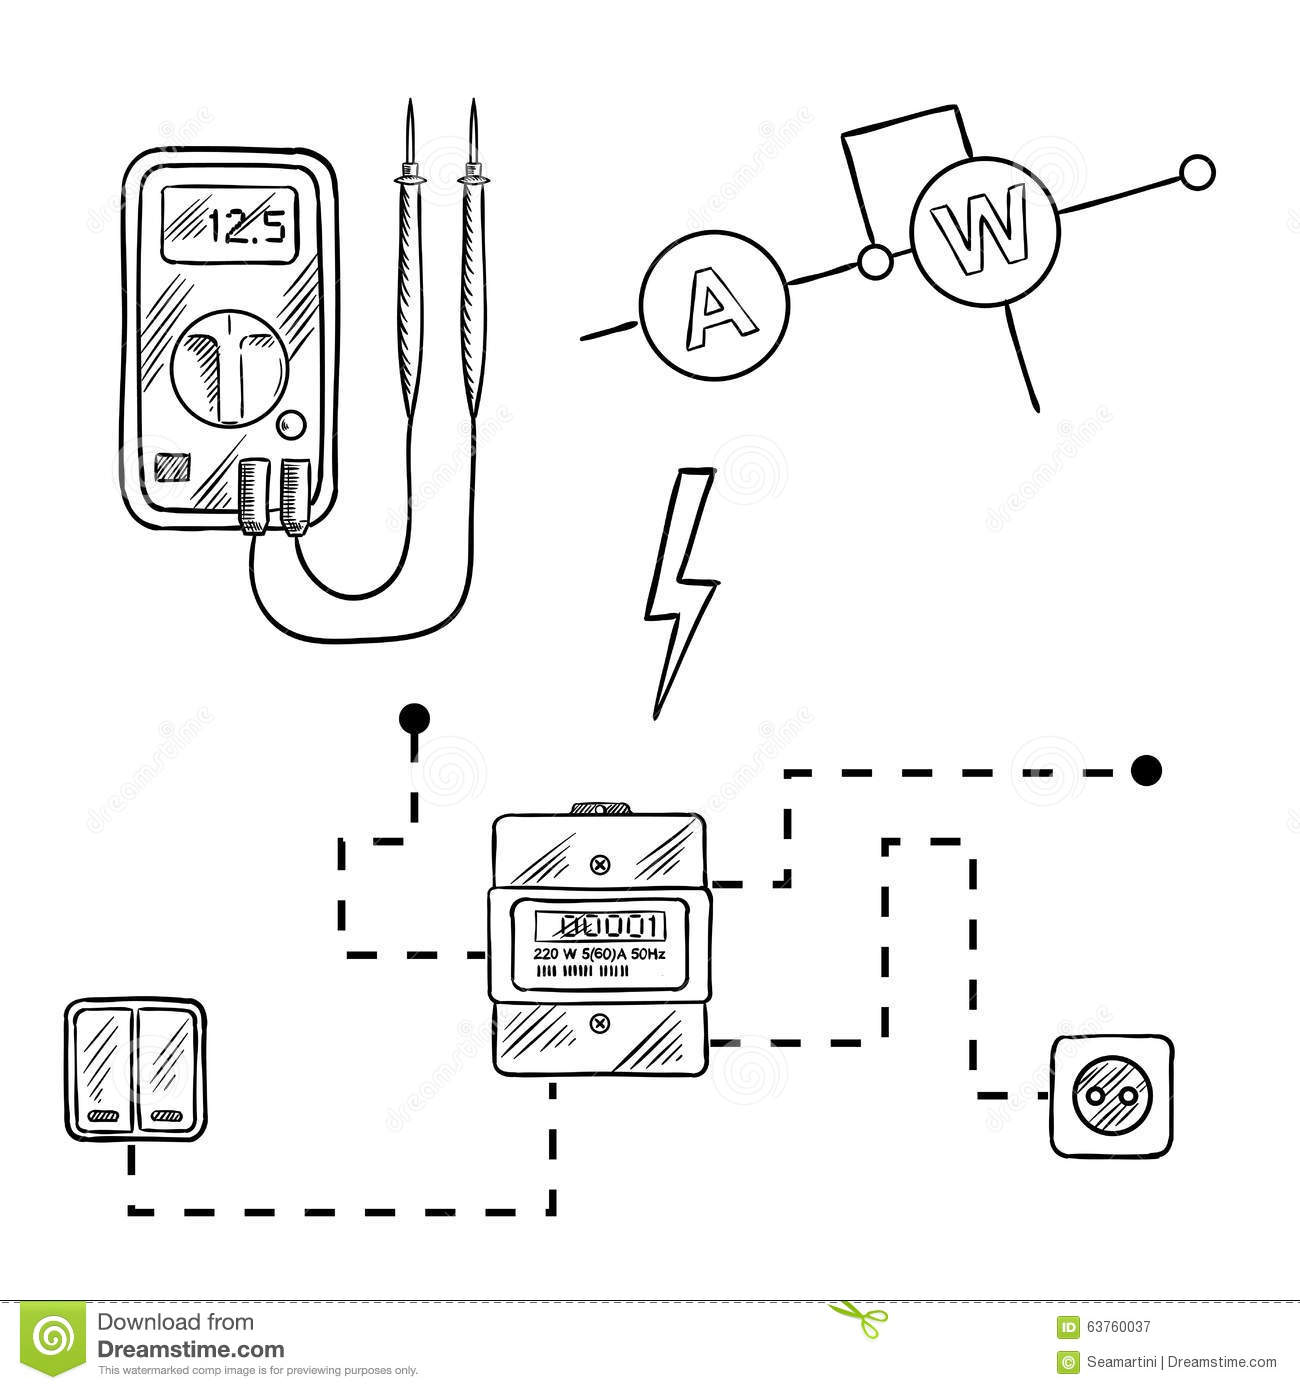 Stock Illustration Voltmeter Electricity Meter Electrical Circuit Sketch Digital Socket Switches Diagram Icons Supplies Image63760037 on industrial wiring symbols